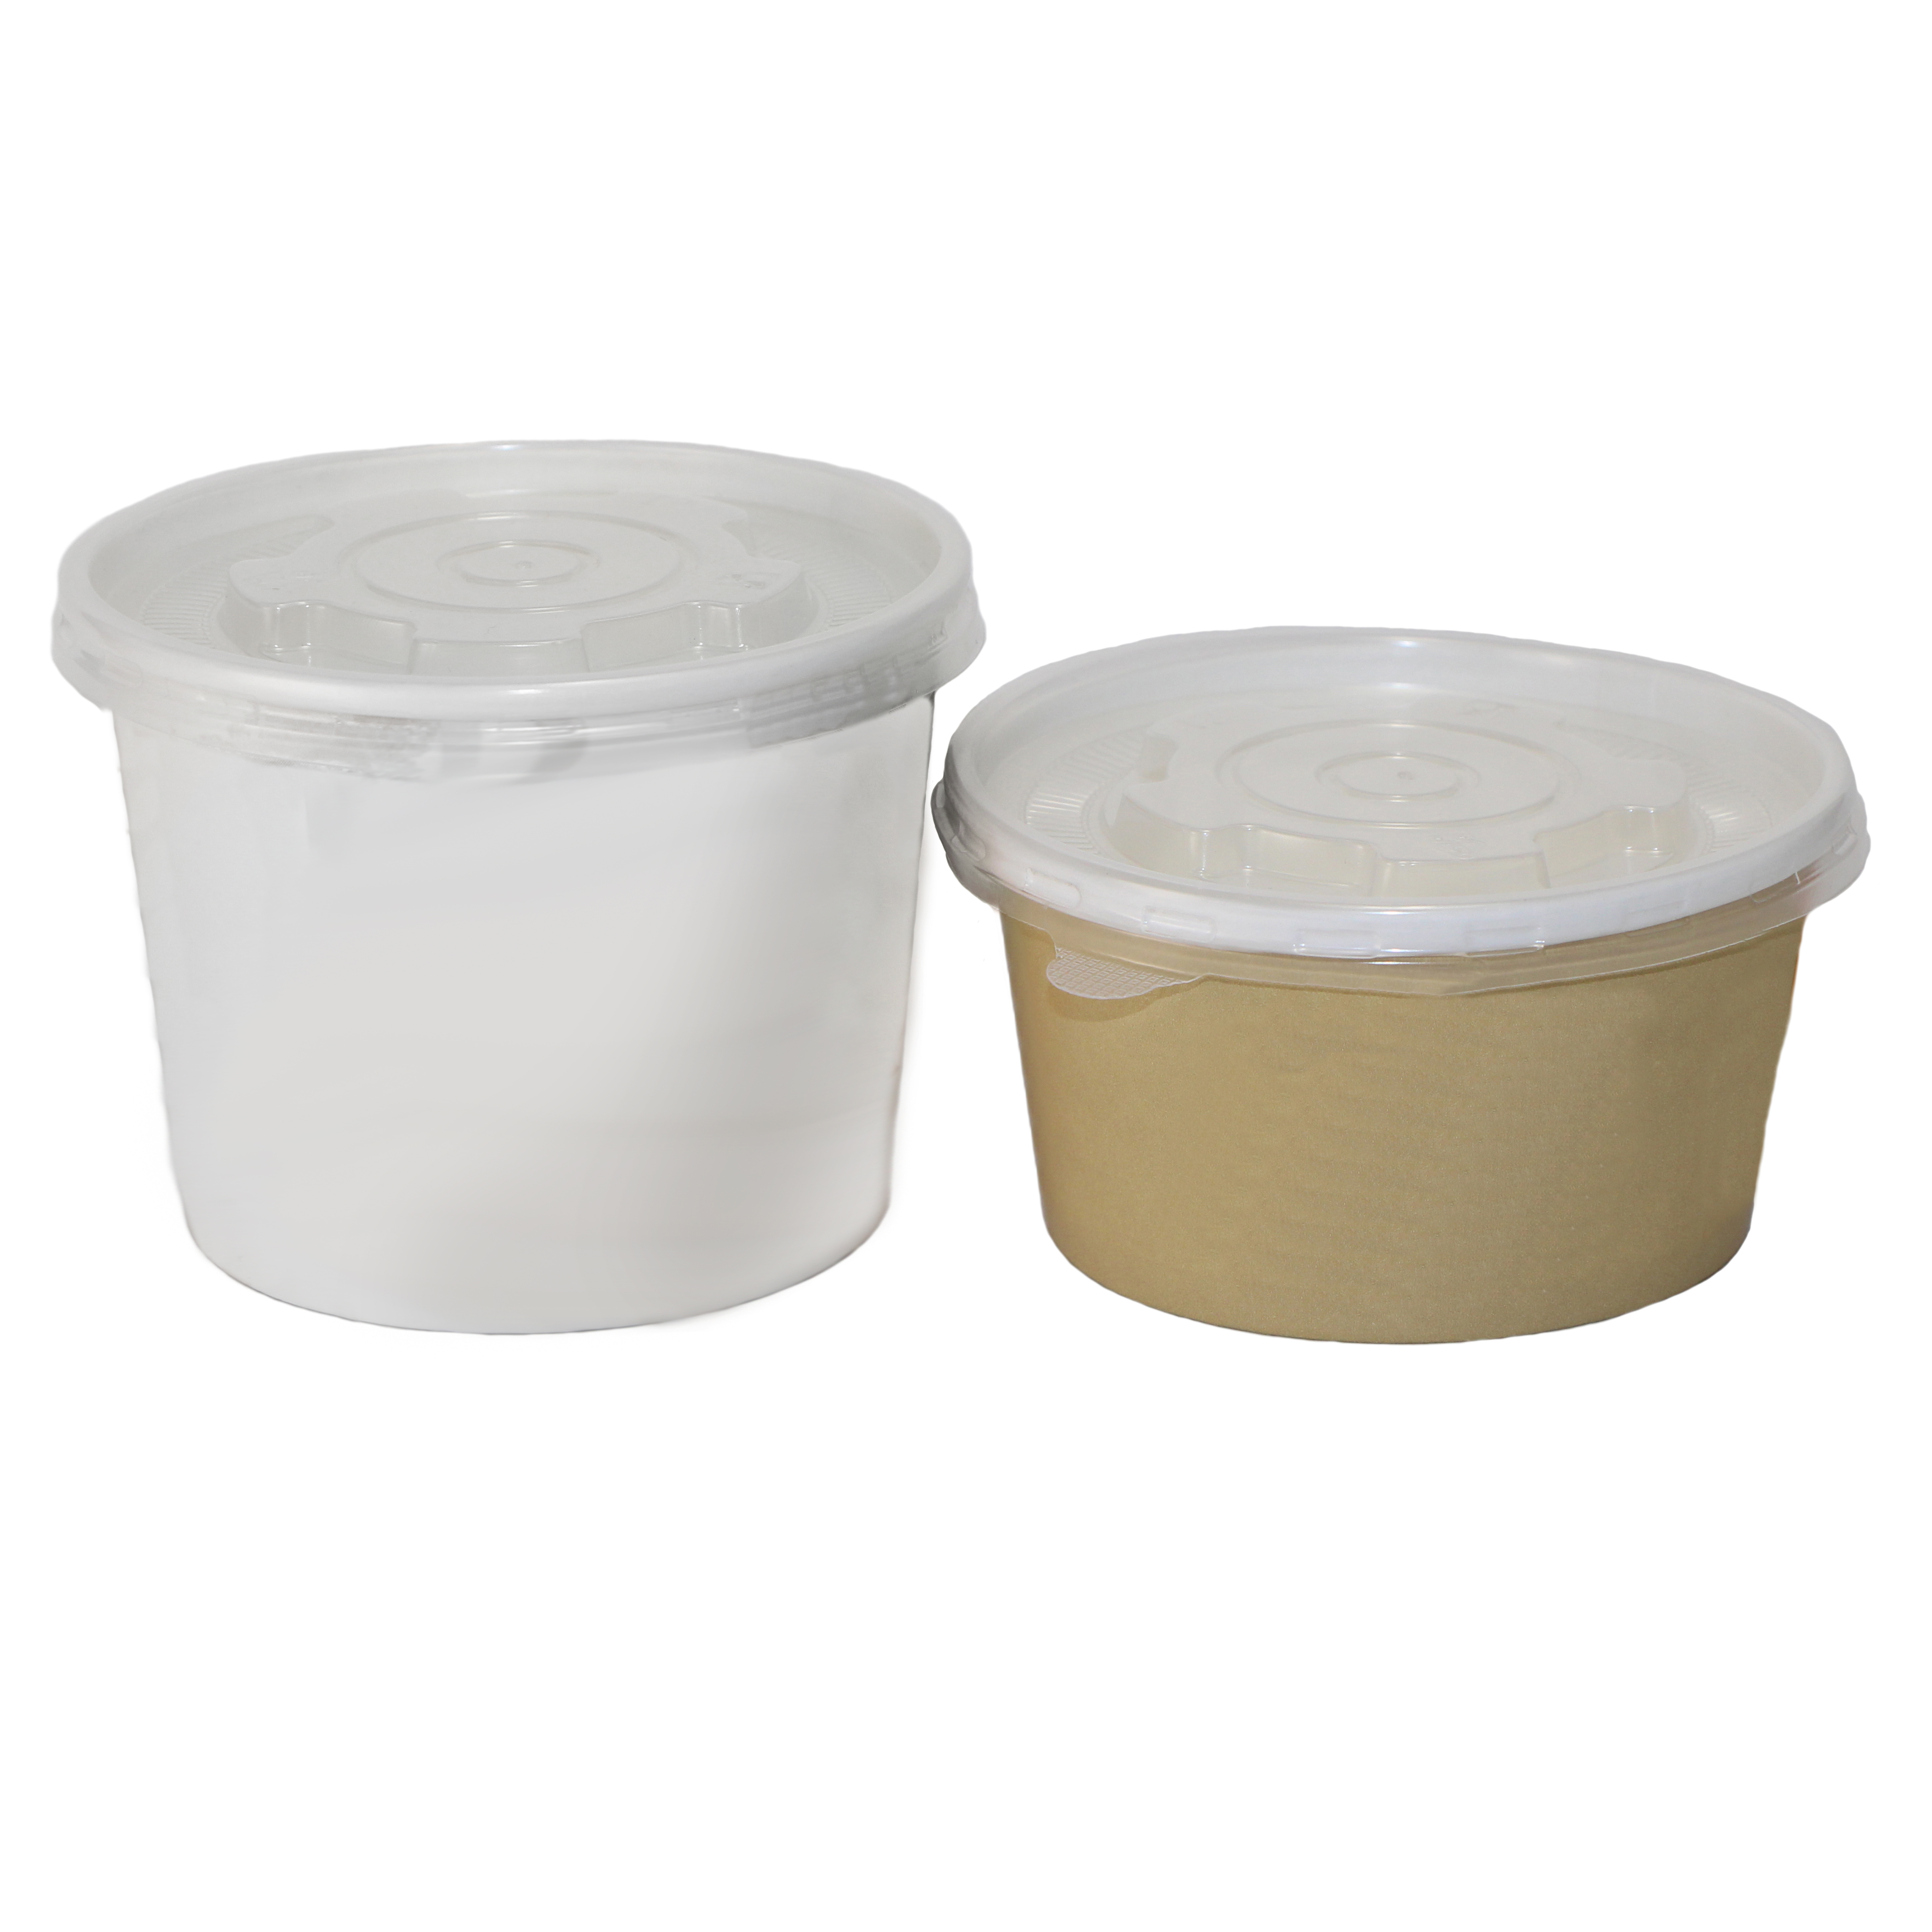 Custom Printed Paper Sauce/Soup Bowls • Sizes: 4, 5, 6, 8, 12, 16, 32 Oz • Minimums: 50 To 100 Cases (1,000 Units/case) • Superior Print Quality To Show Your Logo/message